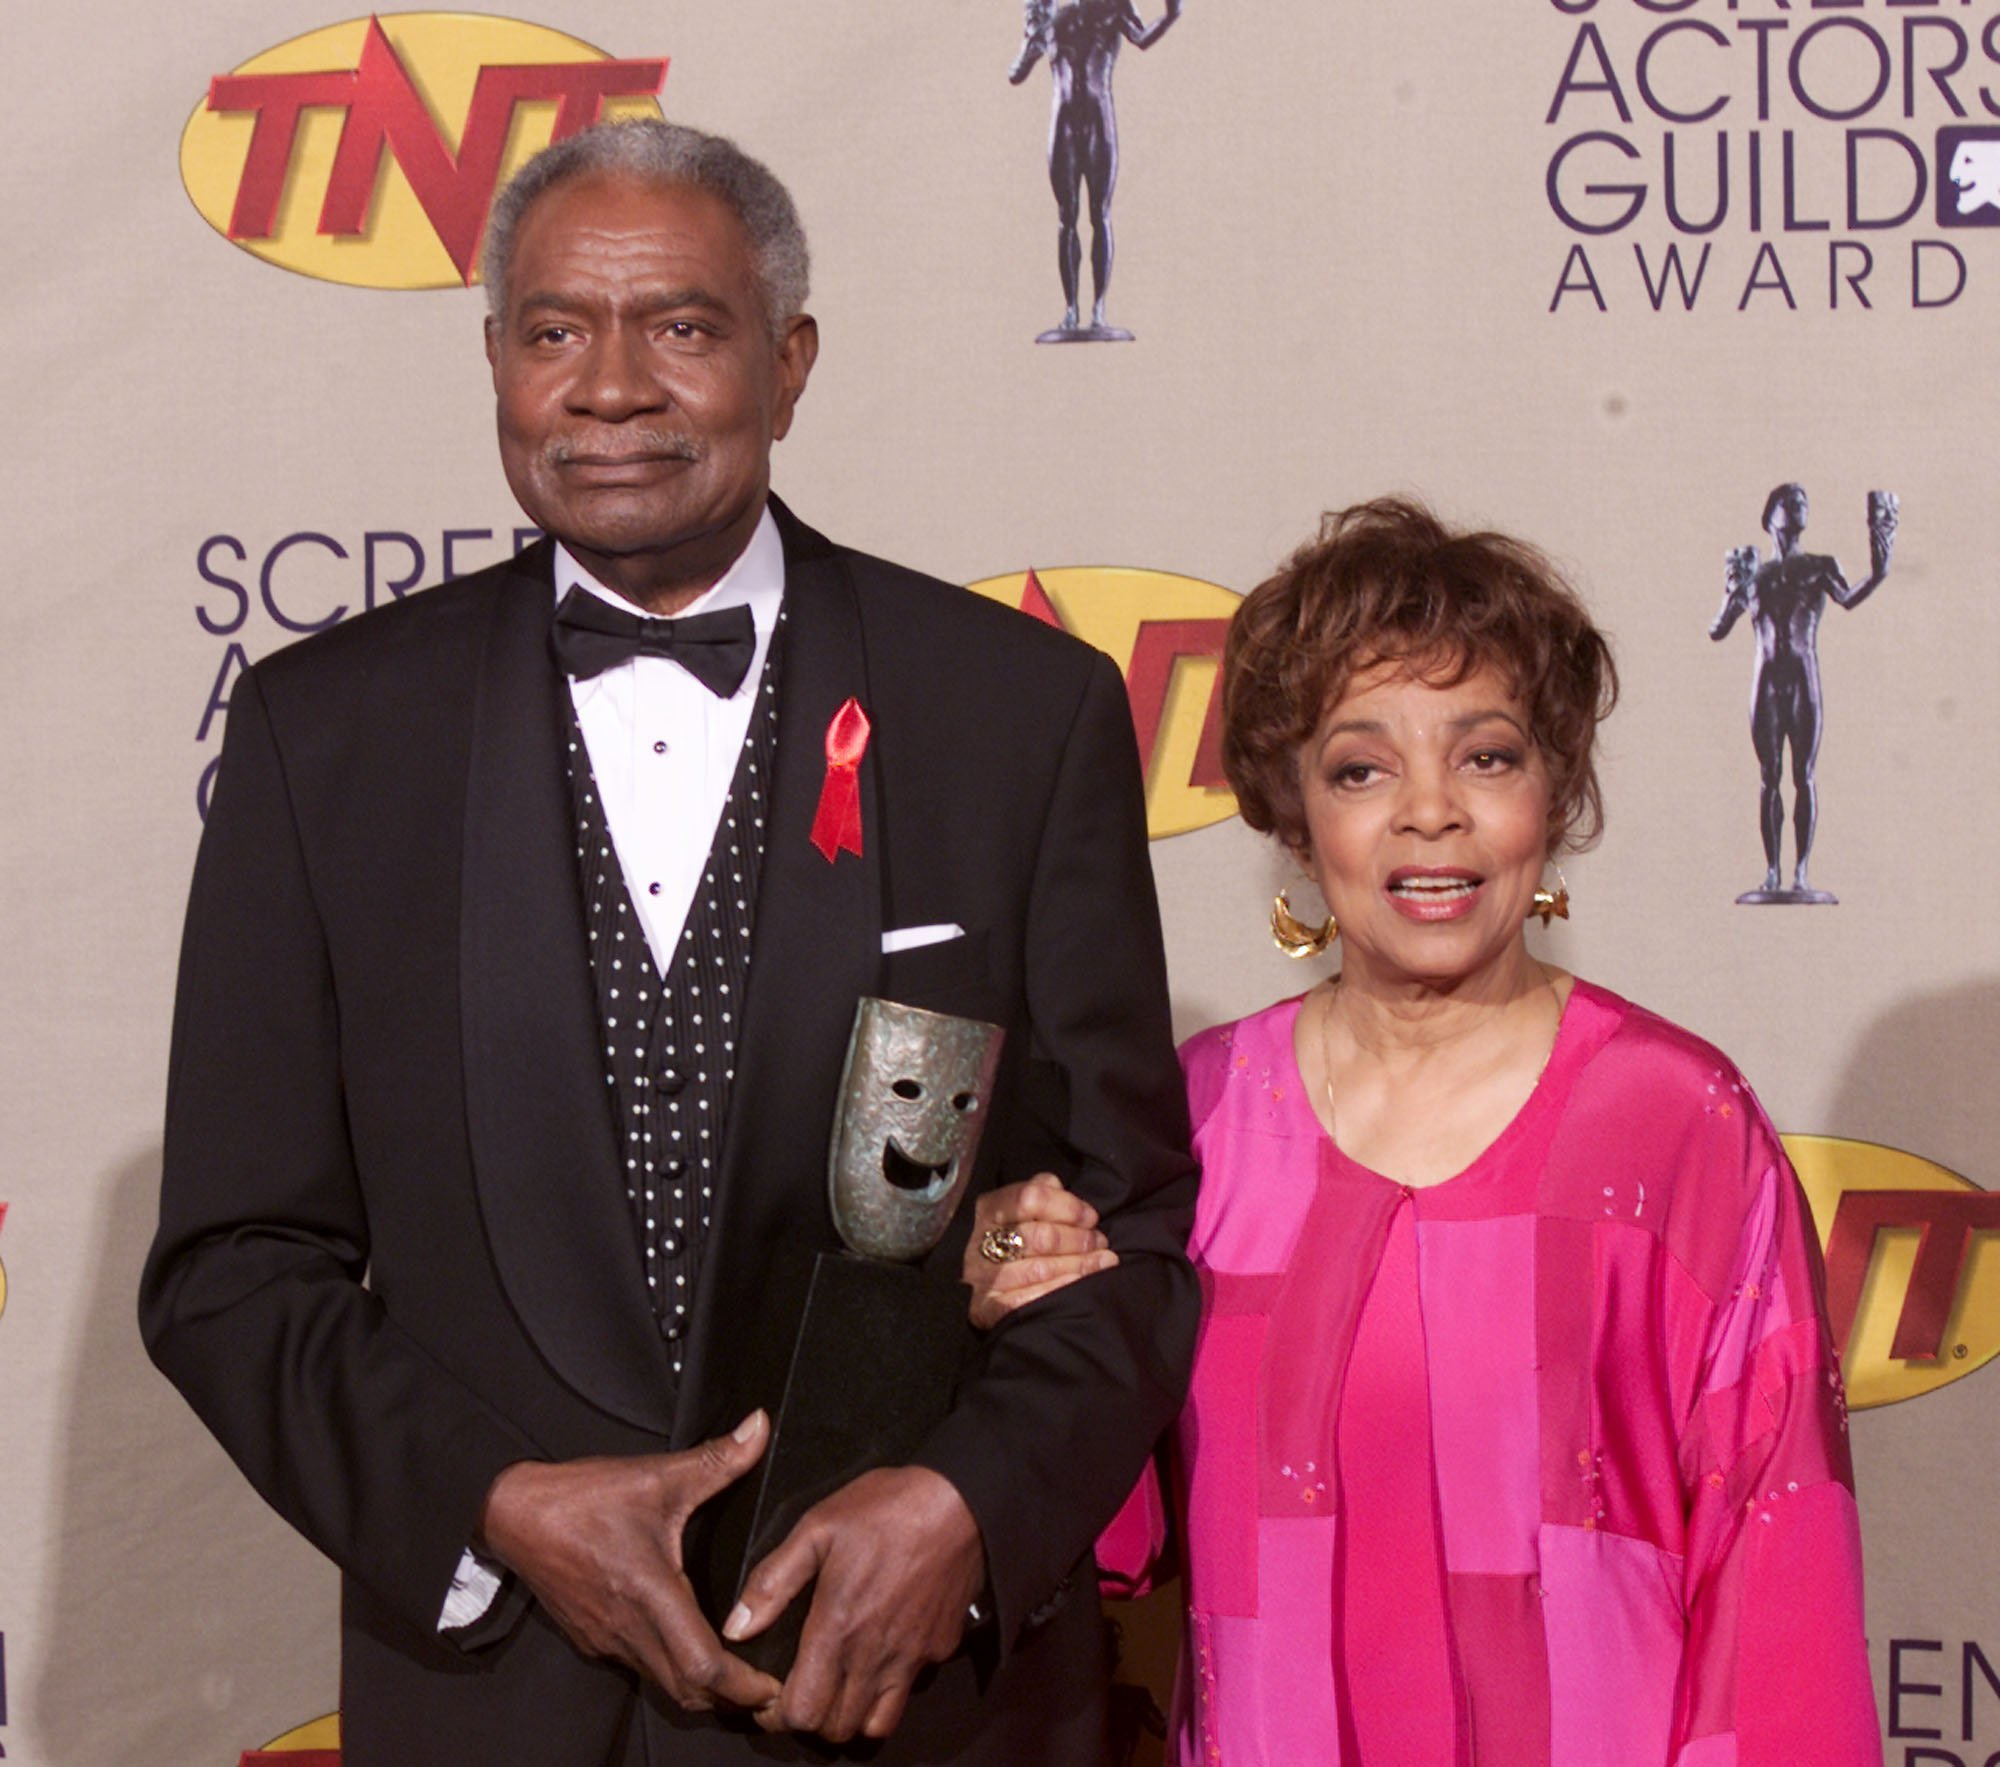 Ossie Davis and Ruby Dee backstage at the 7th Annual Screen Actors Guild Awards. March, 2001. | Photo: GettyImages